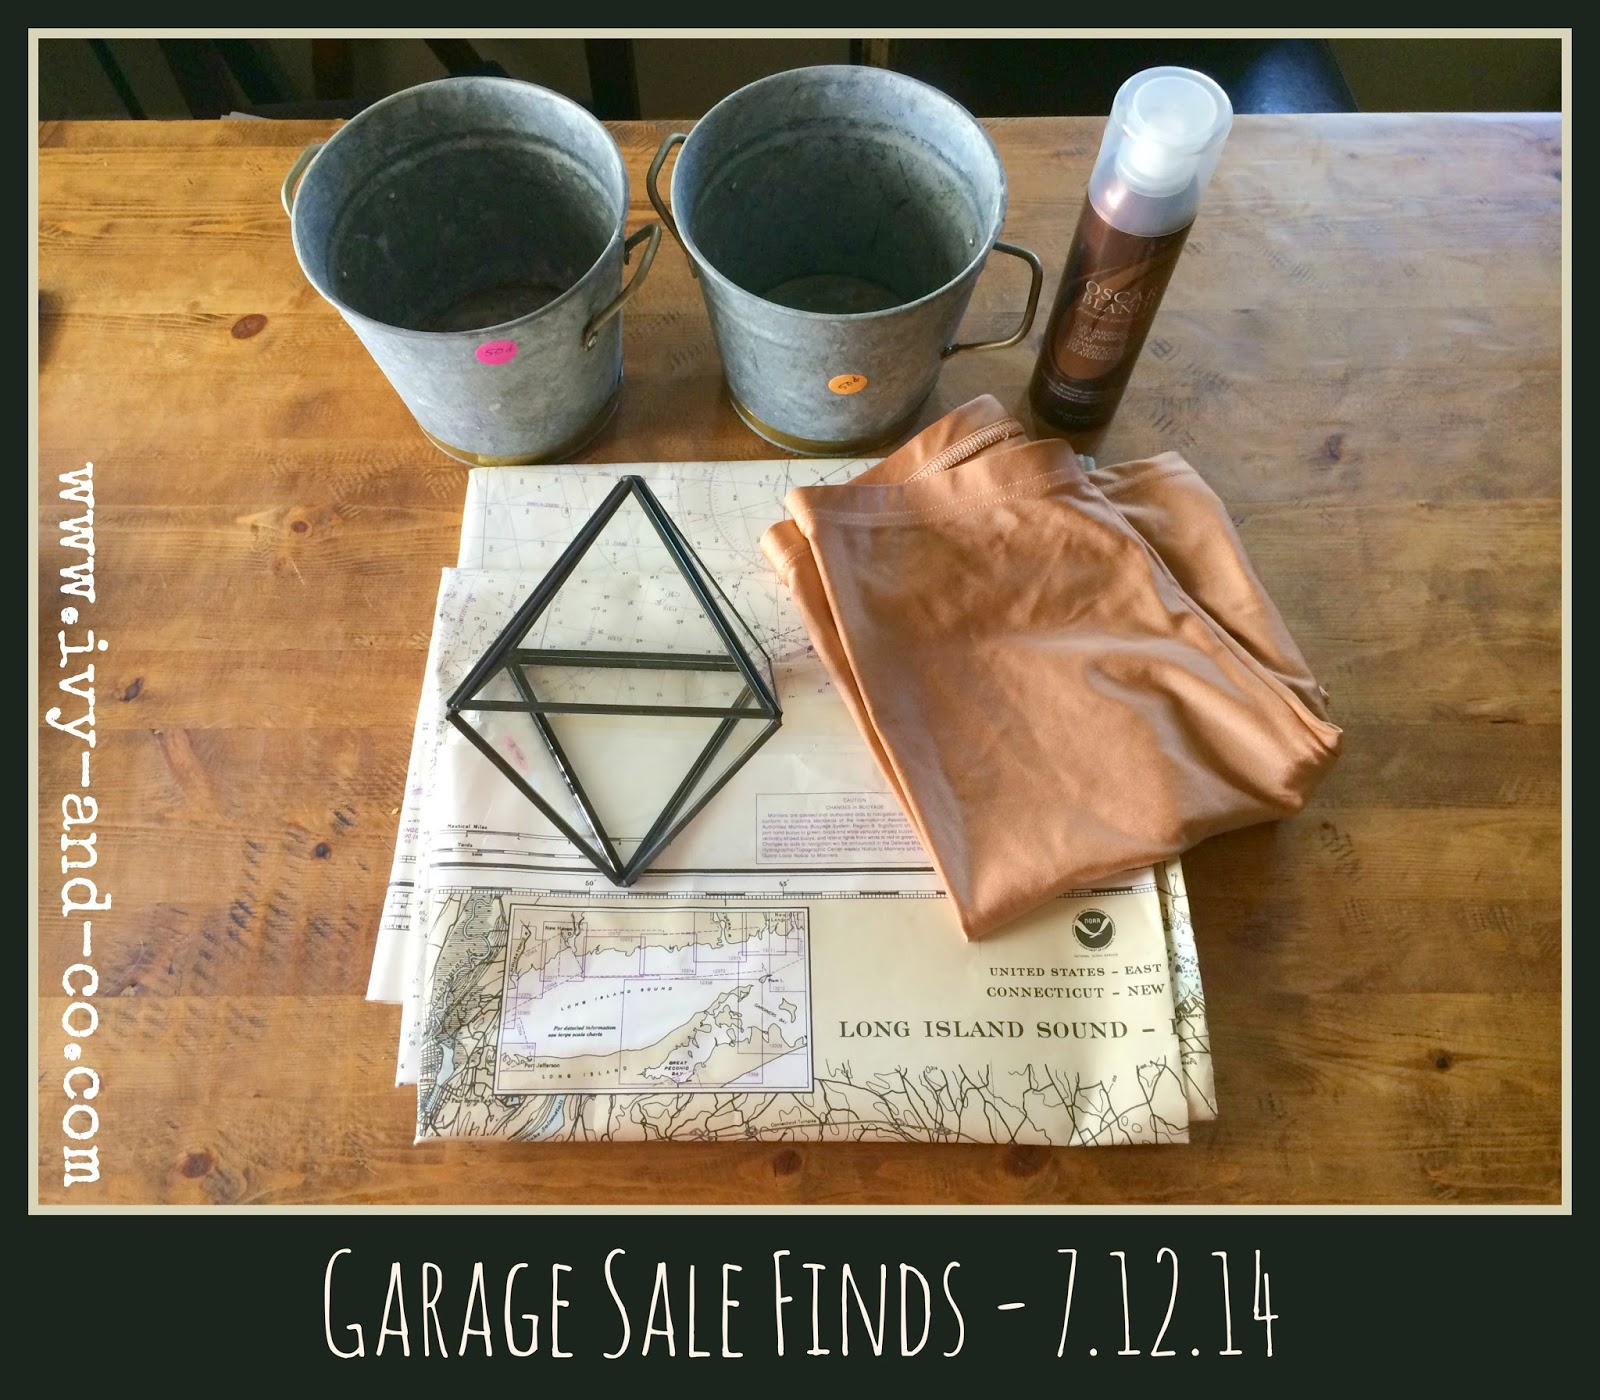 garage sale finds treasures deals in Maui Hawaii